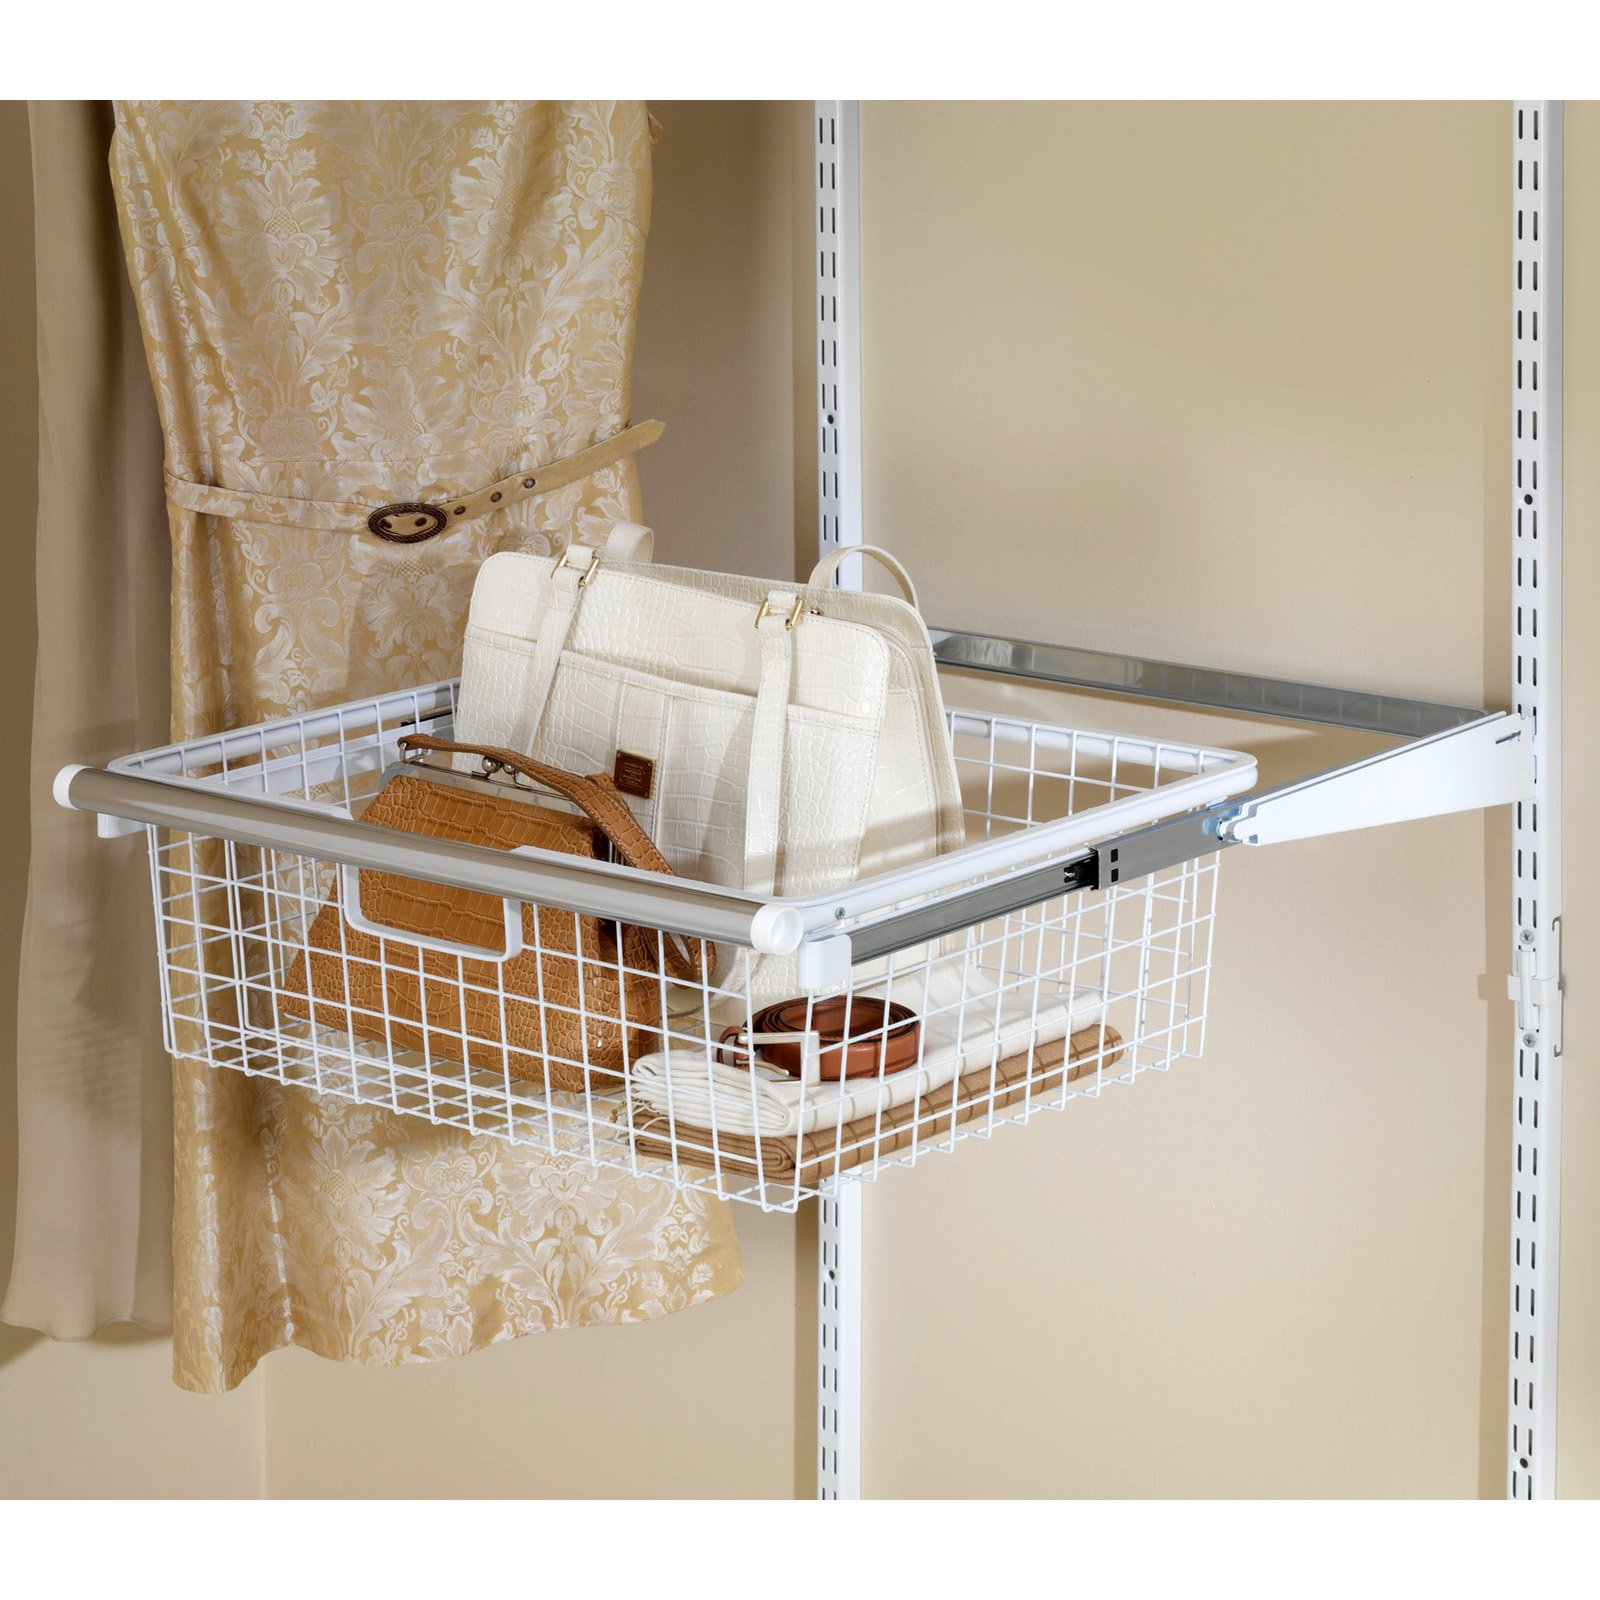 Rubbermaid Home Prod Dorfile FG3J0503WHT Configurations Sliding Basket, White